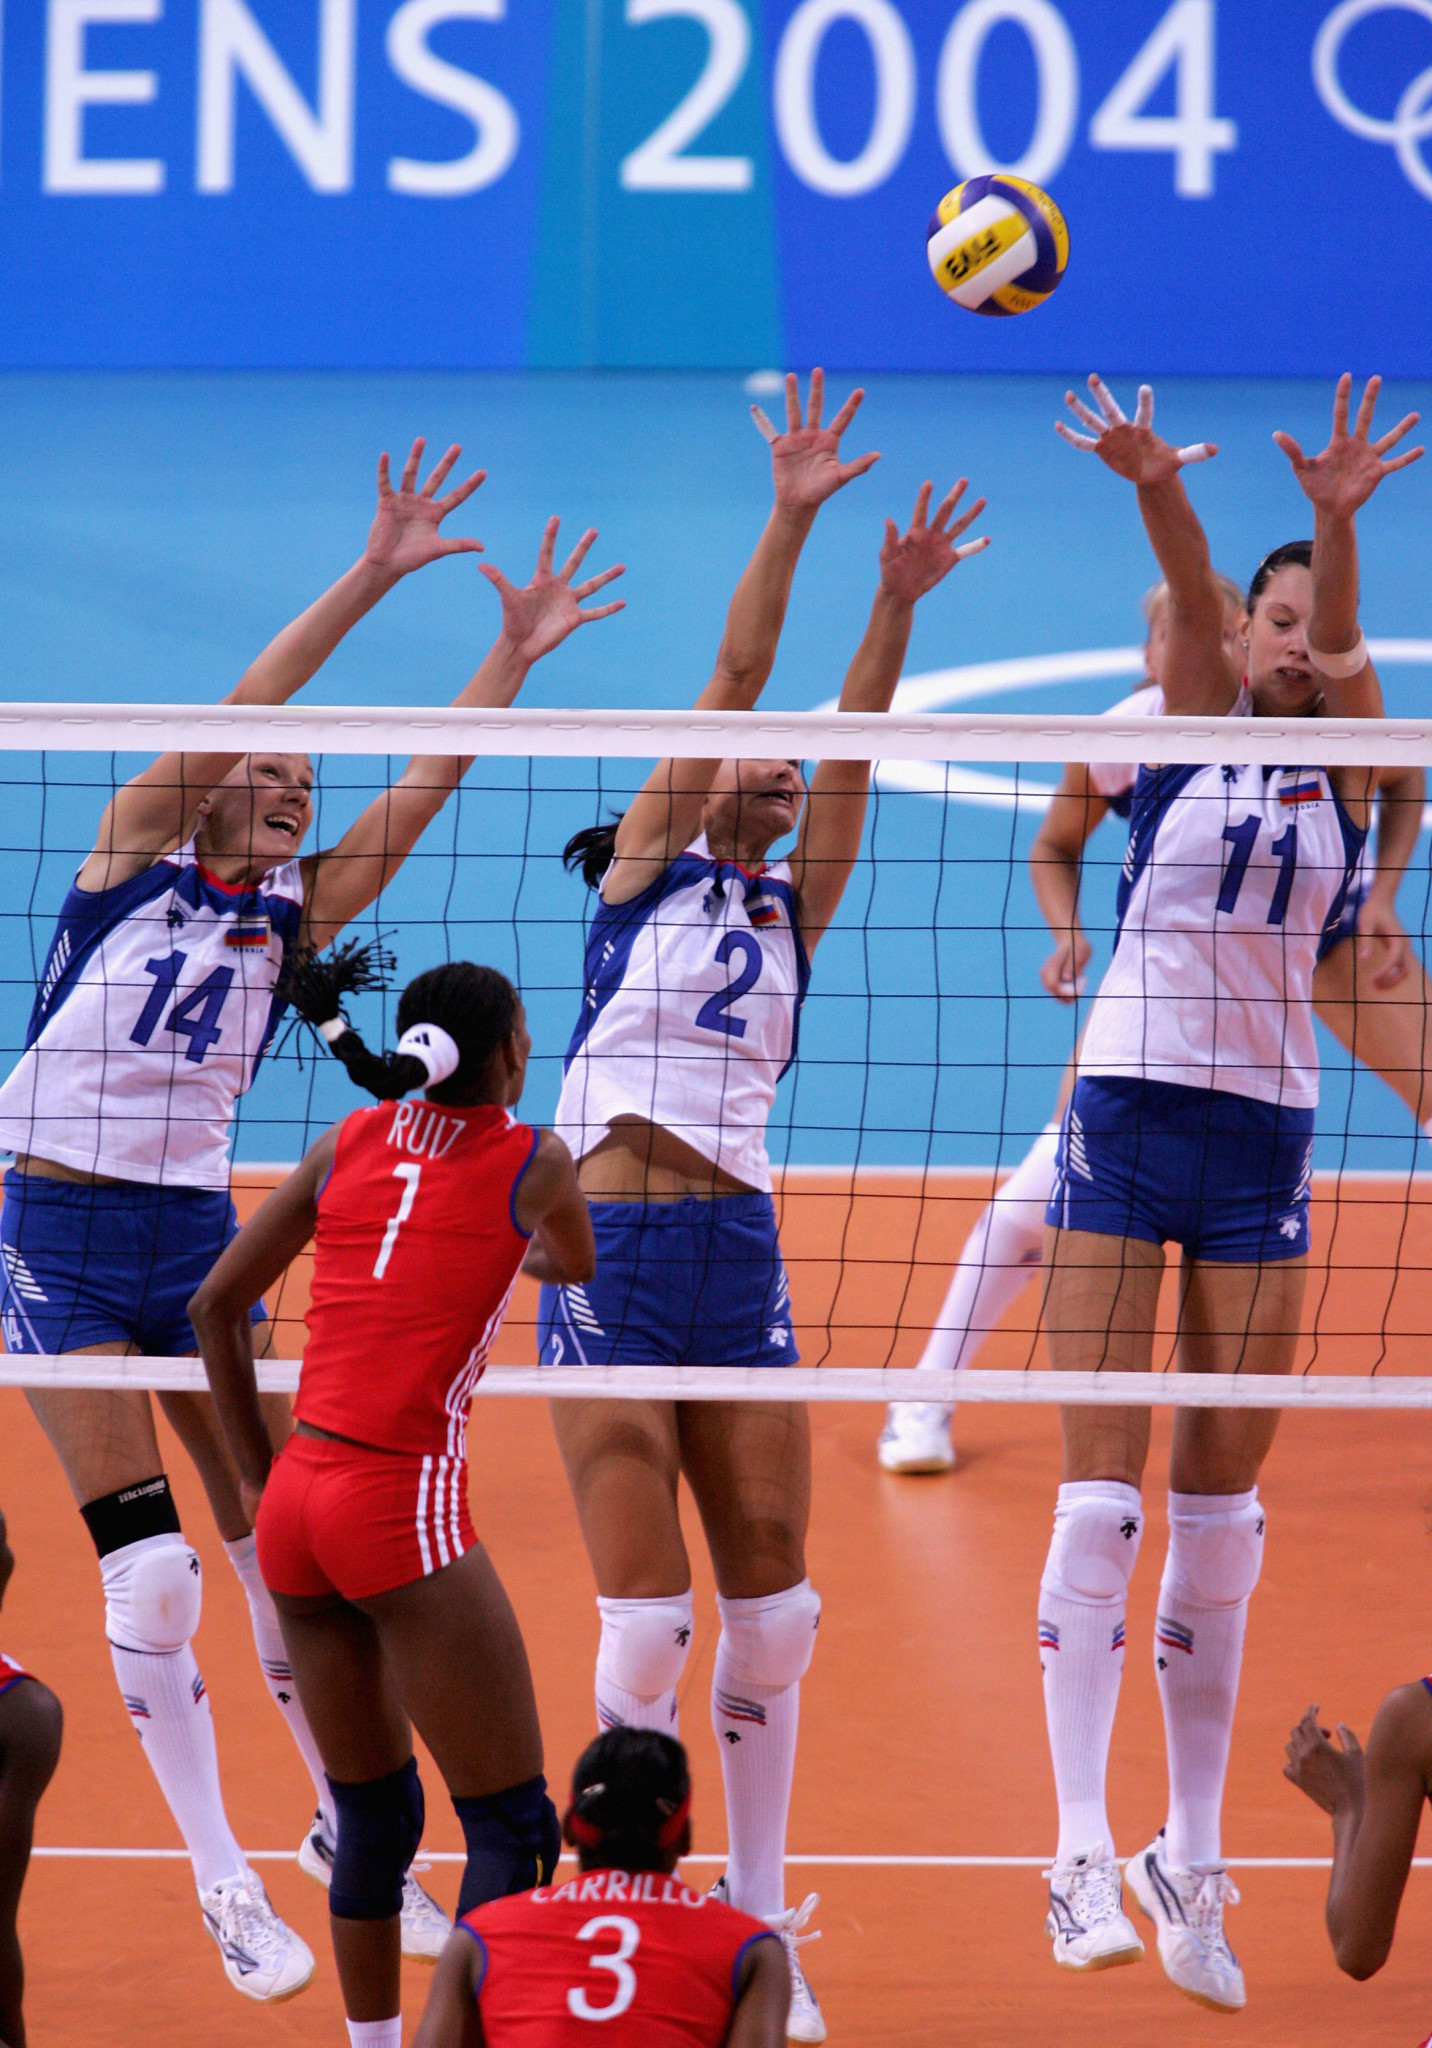 The Yekaterinburg 2023 volleyball venue is named after Nikolay Karpol, who coached Russia to have Olympic volleyball medals, including silver at Athens 2004 ©Getty Images